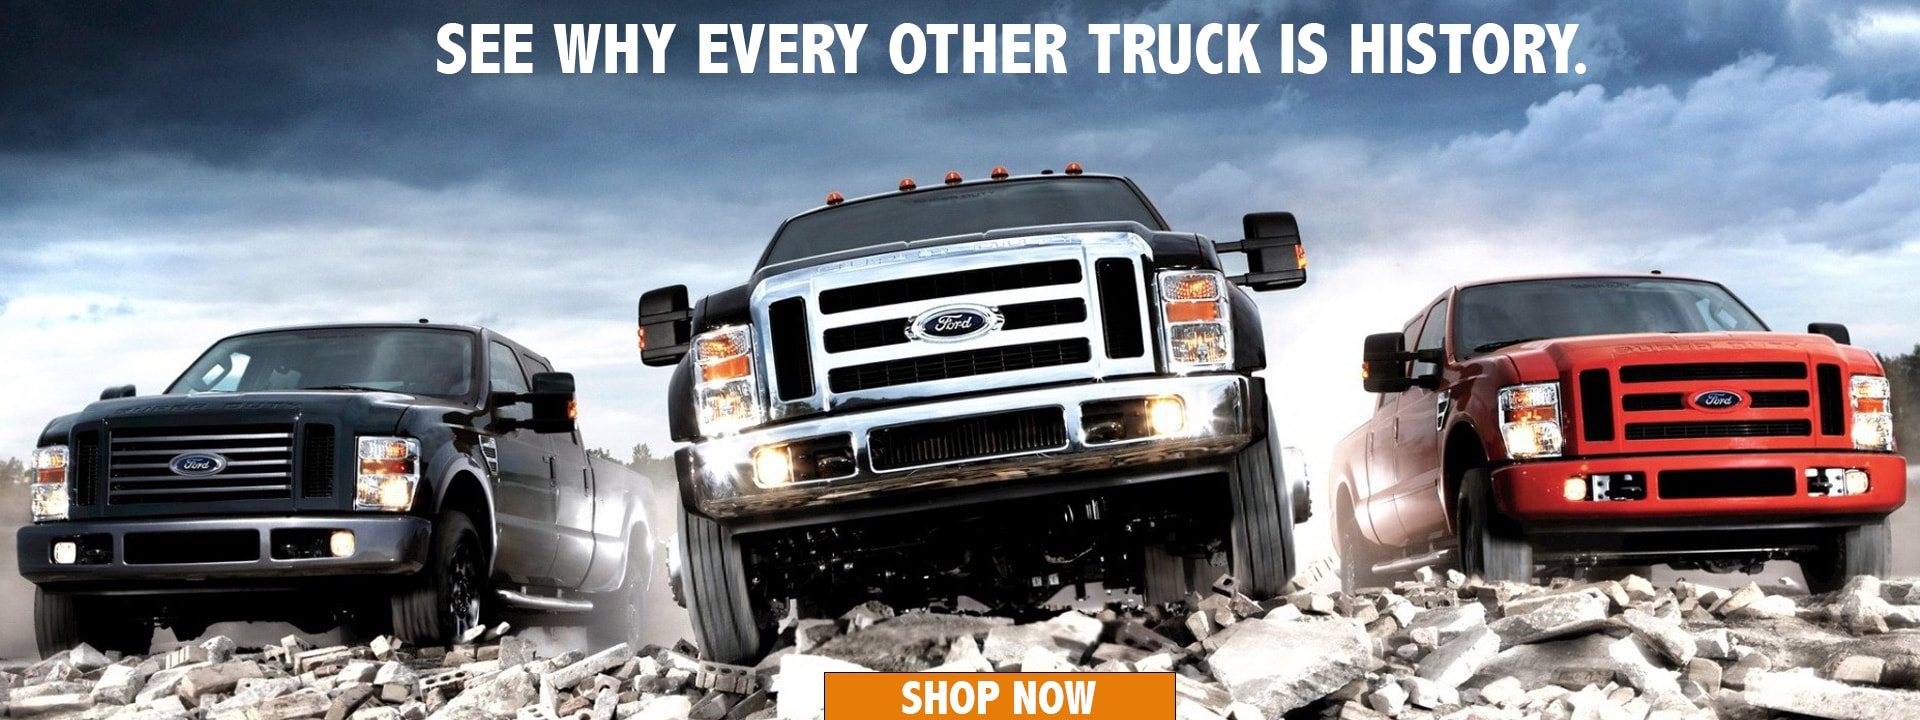 Ford F 350 King Ranch For Sale Dallas Tx Diesel Fuel Filter Location Look Around Take Your Time And Fall In Love When Youre Ready Feel Free To Swing By Our Showroom At 300 West Loop 820 S A Test Drive Today